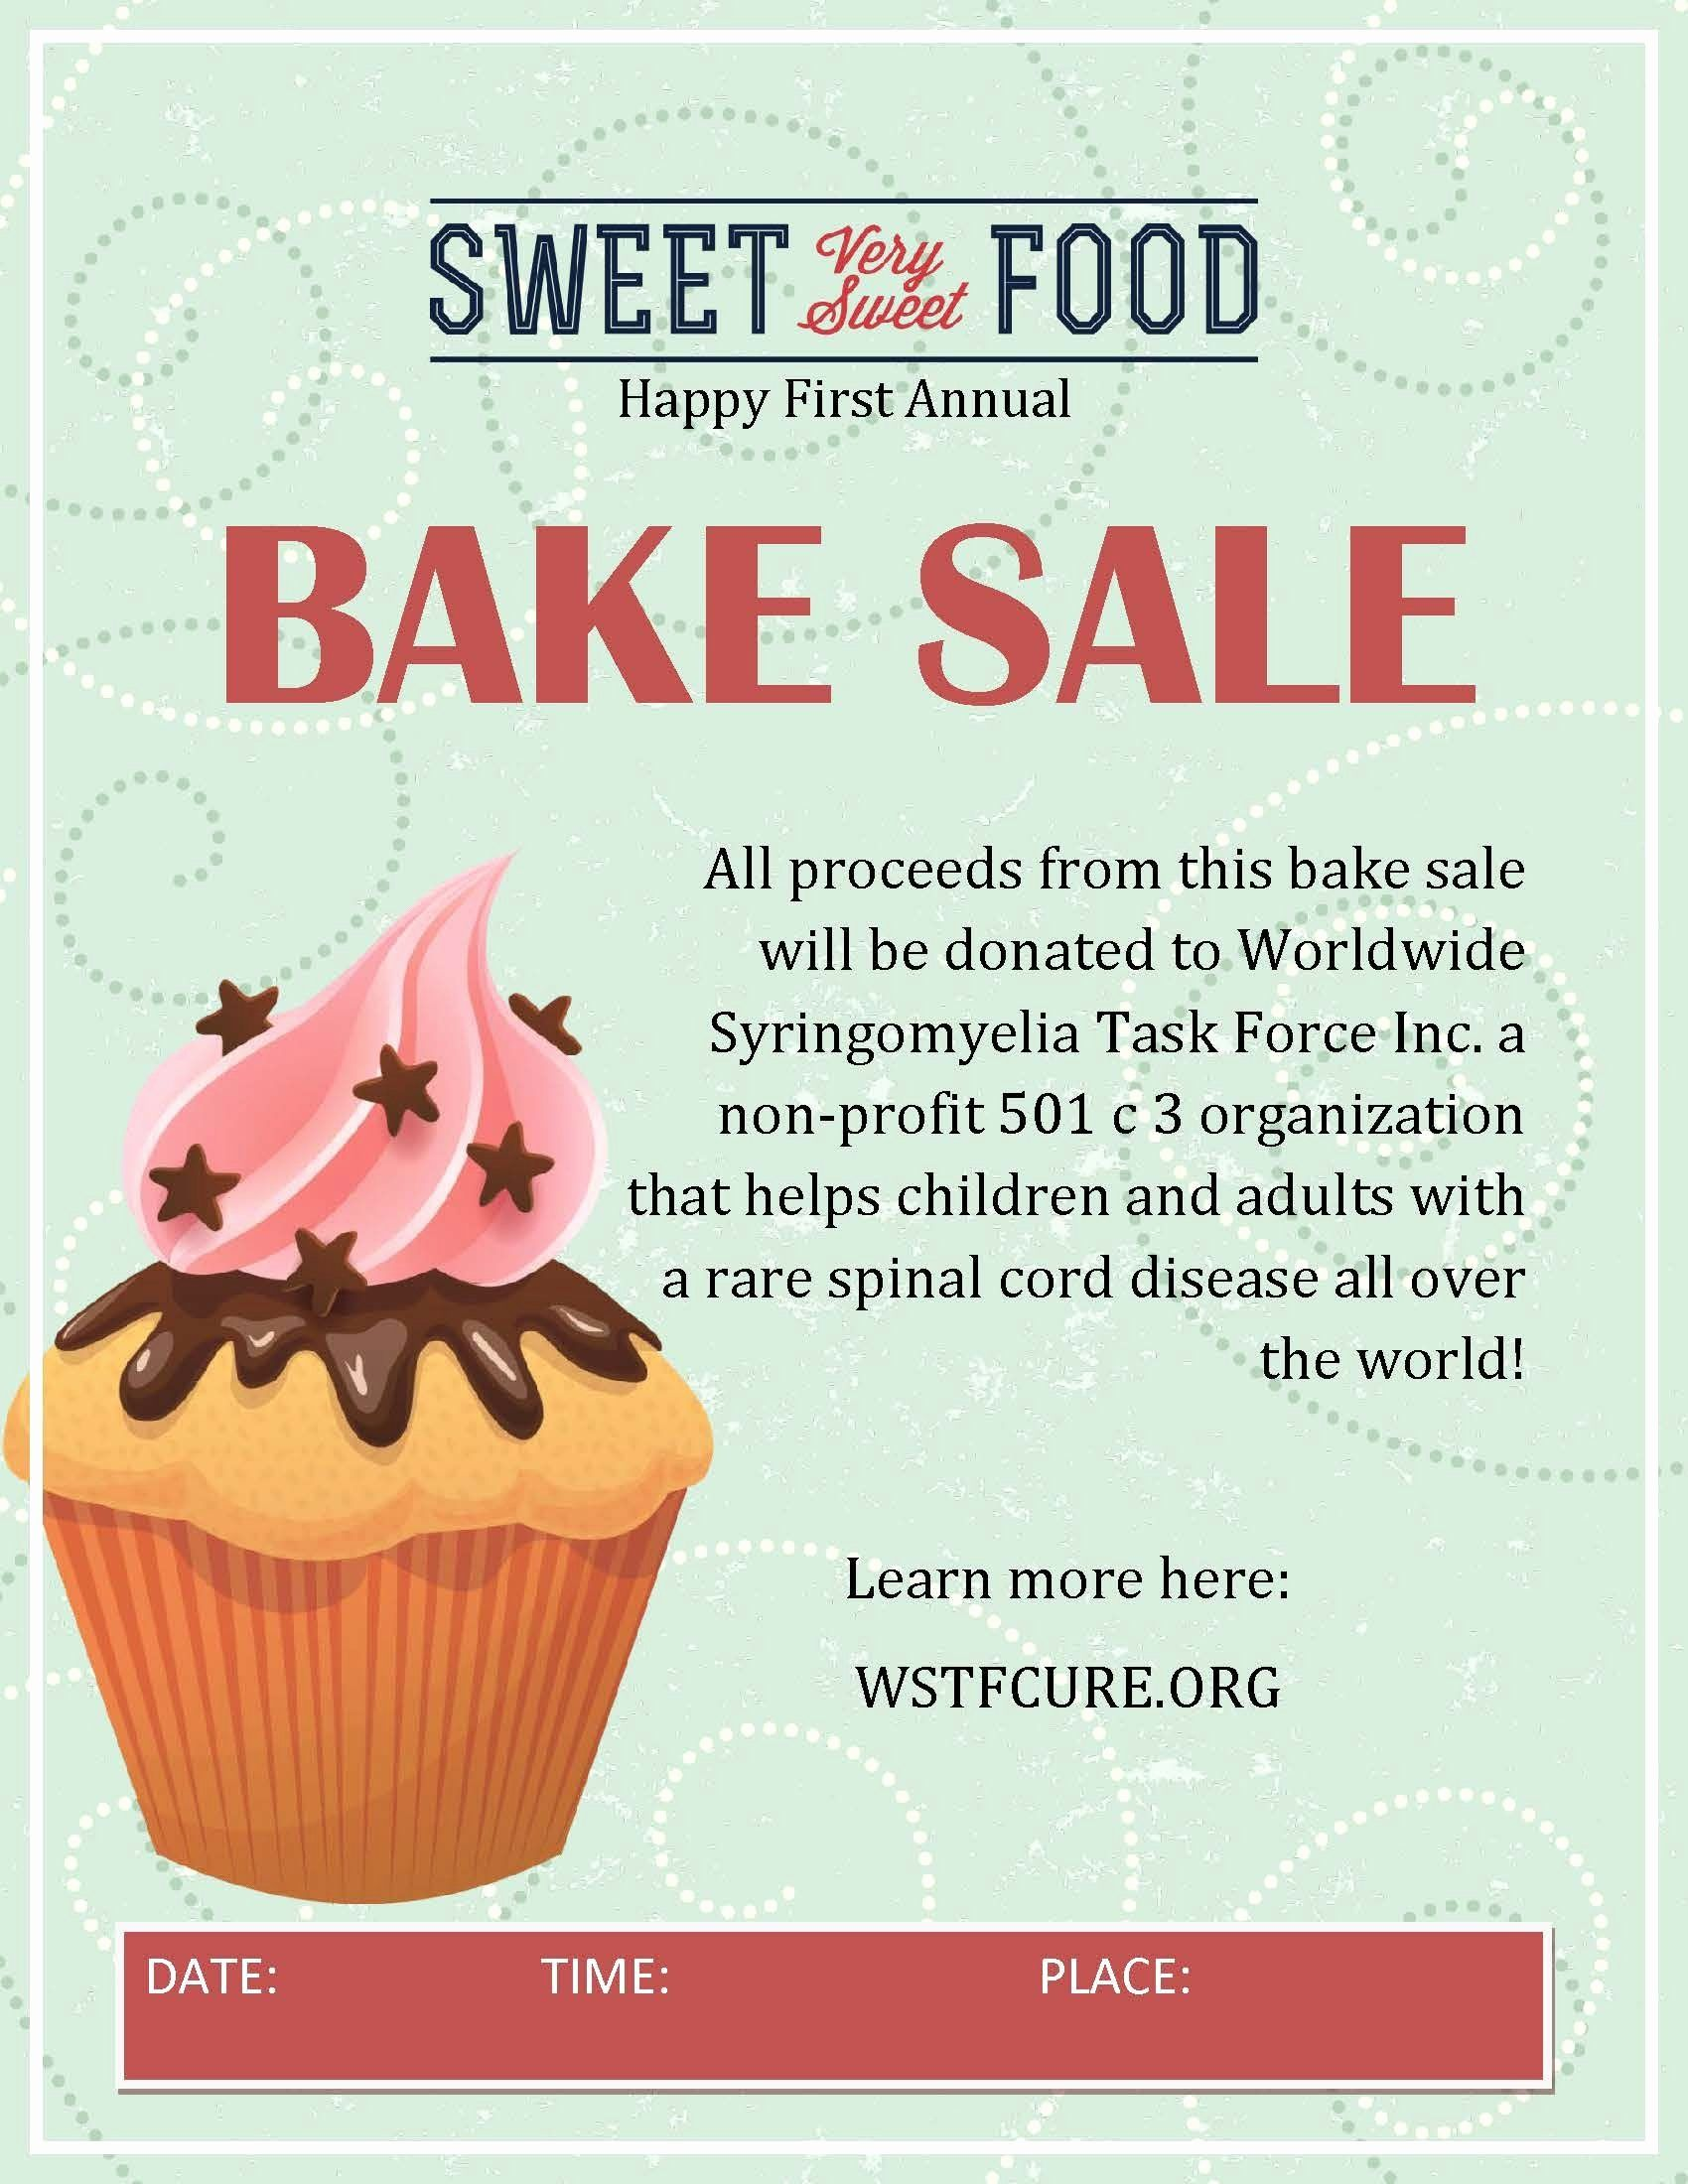 Bake Sale Flyer Template Lovely Participate And Do A Bake Sale In Your Area 100 Percent Bake Sale Flyer Fundraiser Flyer Bake Sale Bake sale fundraiser flyer template